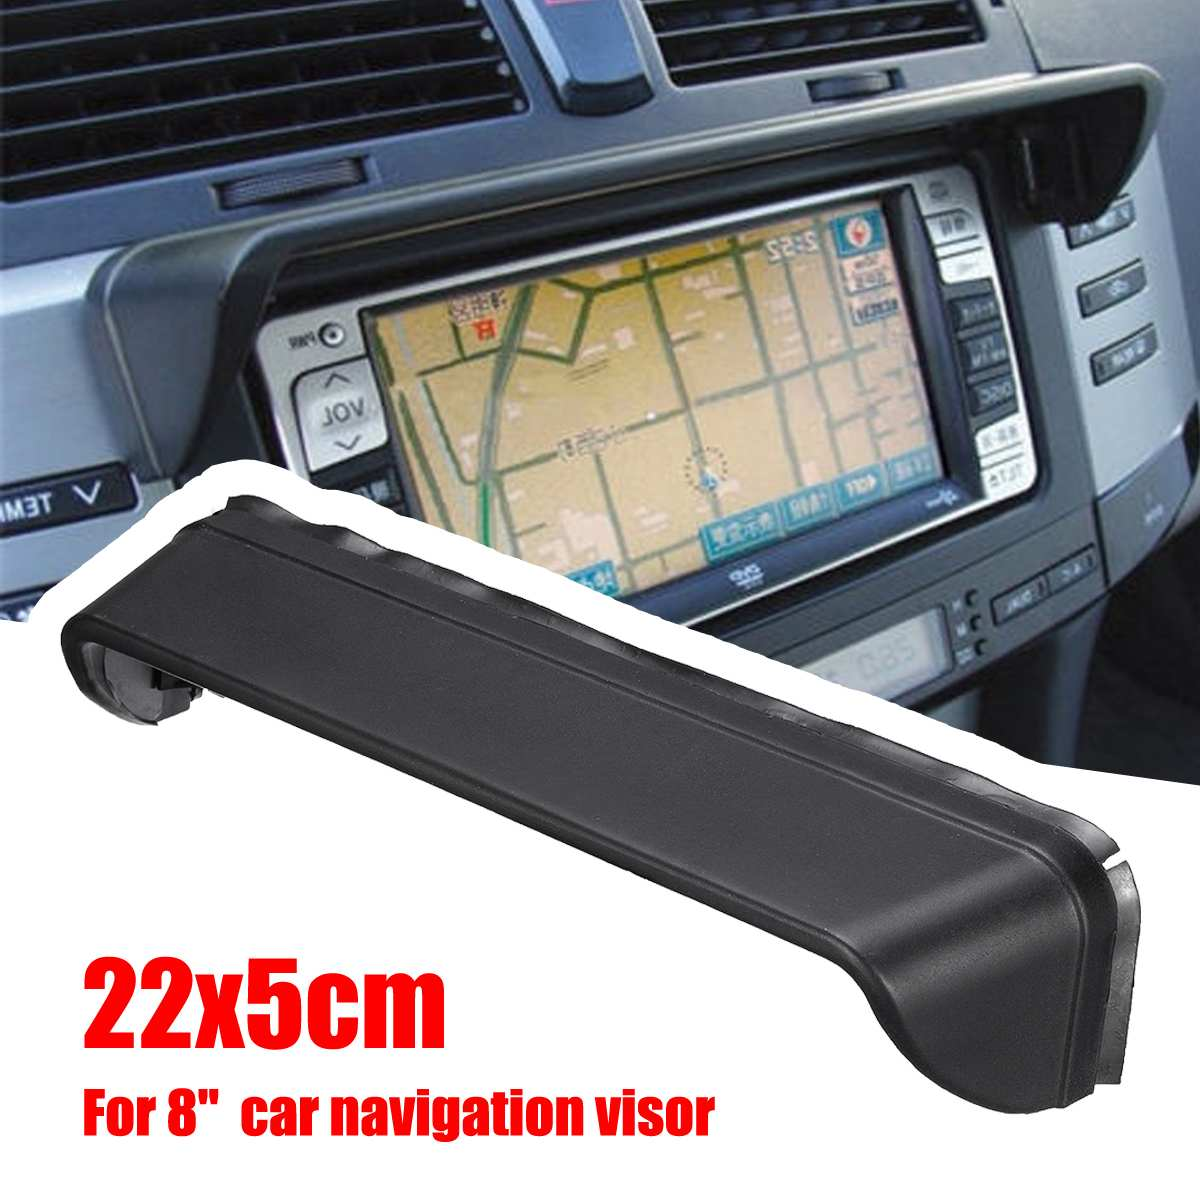 Visor-Hood Sunshade-Cover Gps-Screen 8inch-Navigation-Accessories Car For Auto Dvd/gps